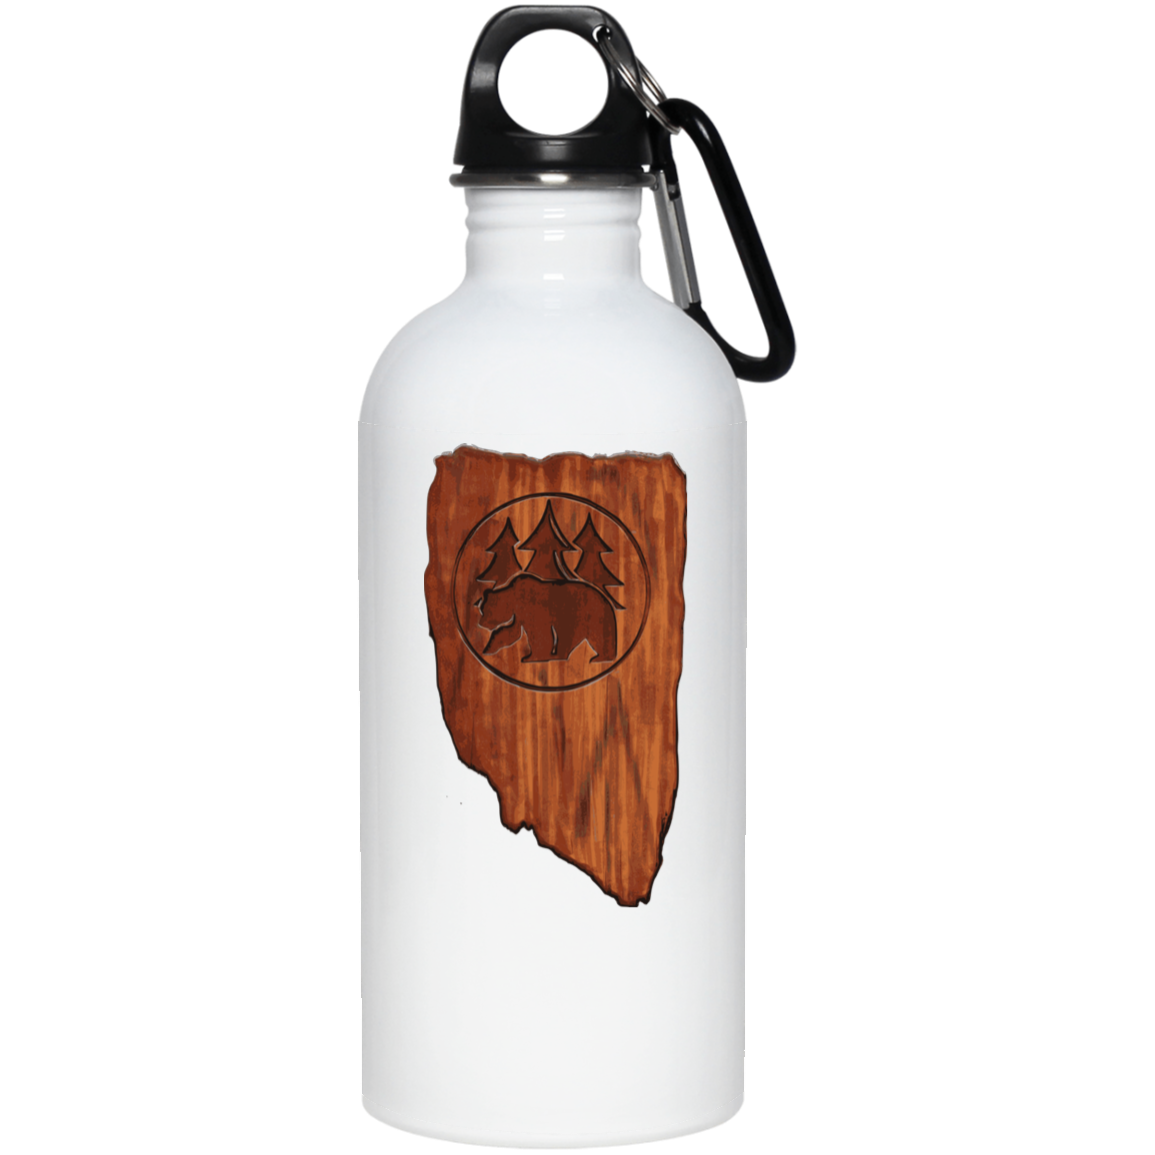 Bearier 20 oz. Stainless Steel Water Bottle